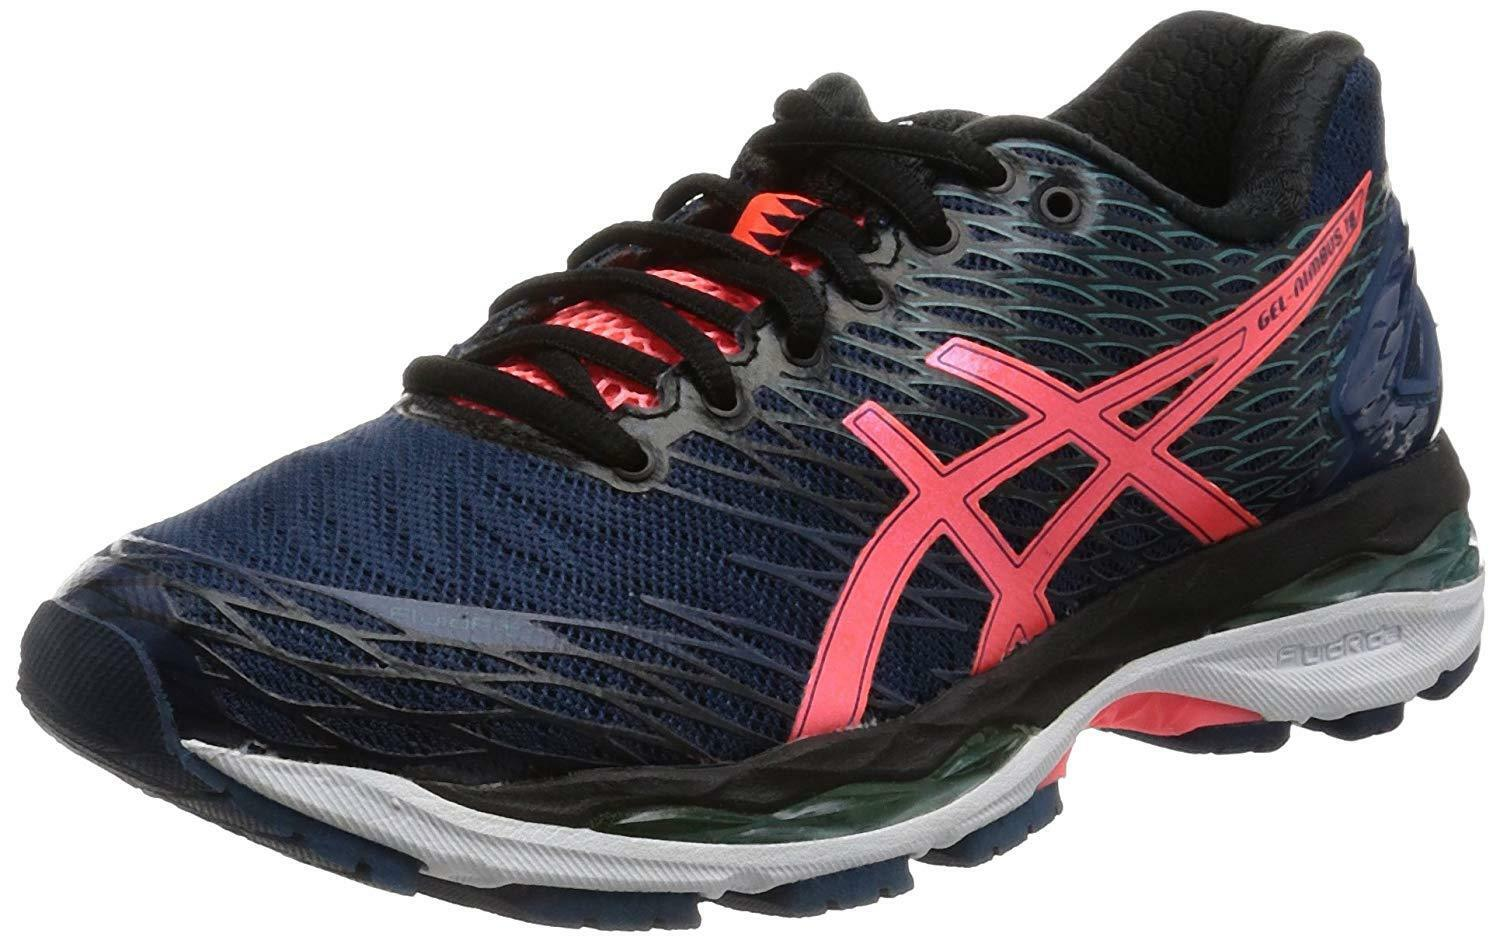 ASICS Running shoes LADY GEL-NIMBUS 18 Wide bluee Coral TJG512 US8(25cm)